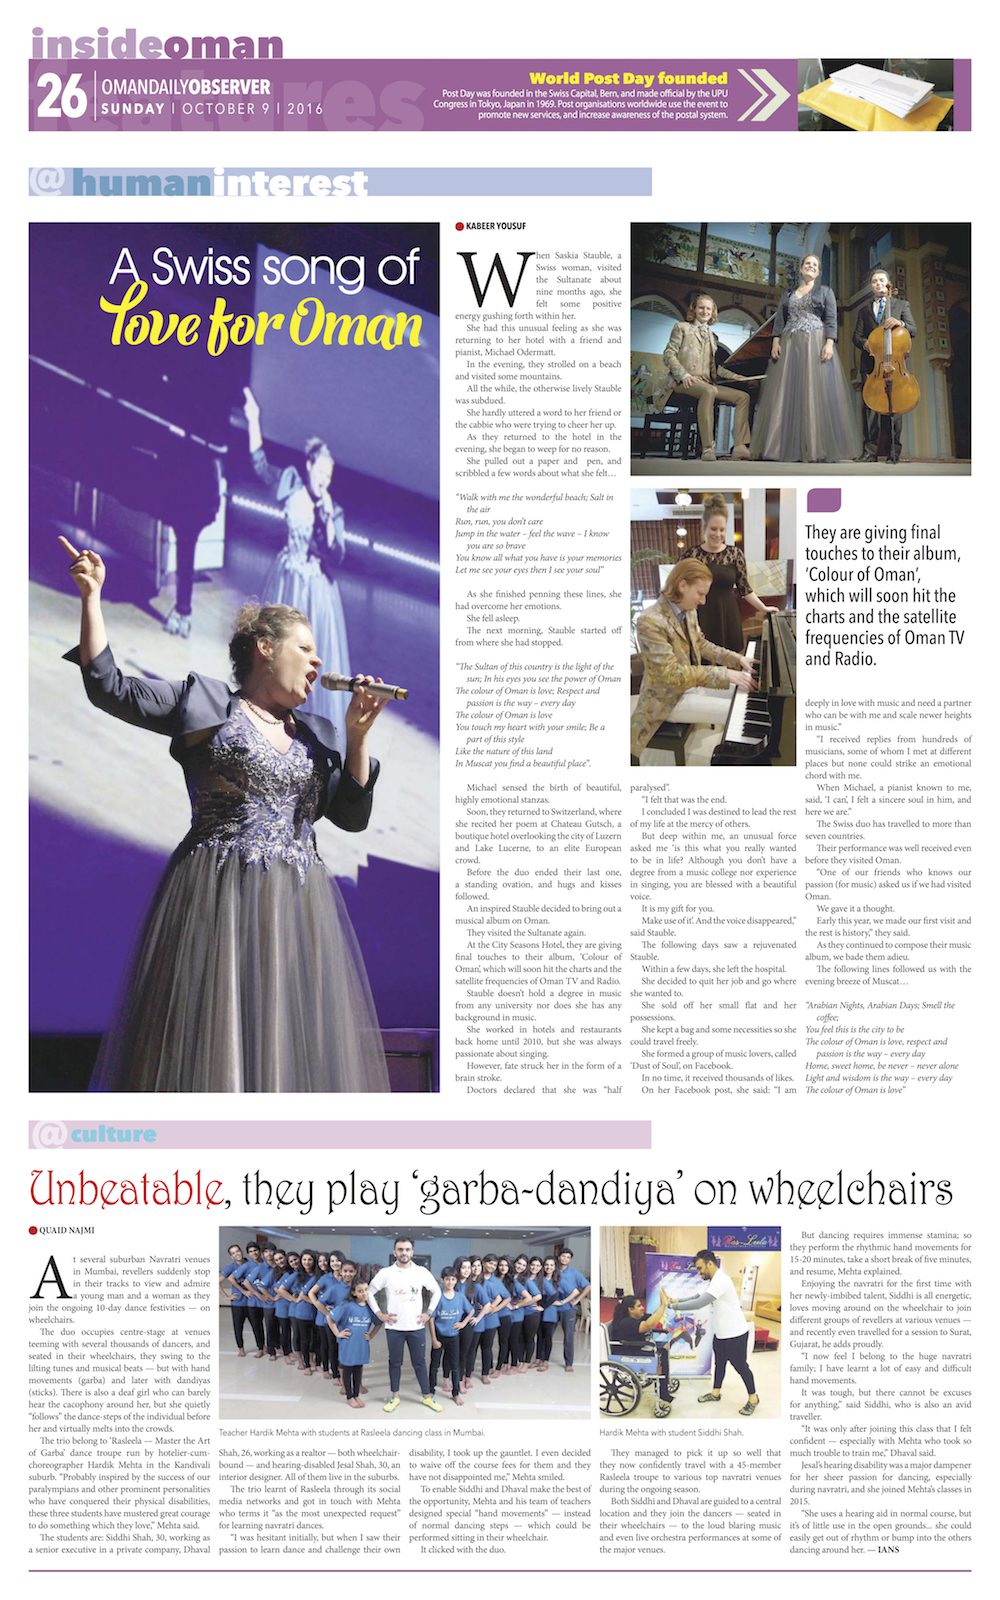 Oman Daily Observer as of 9 October 2016